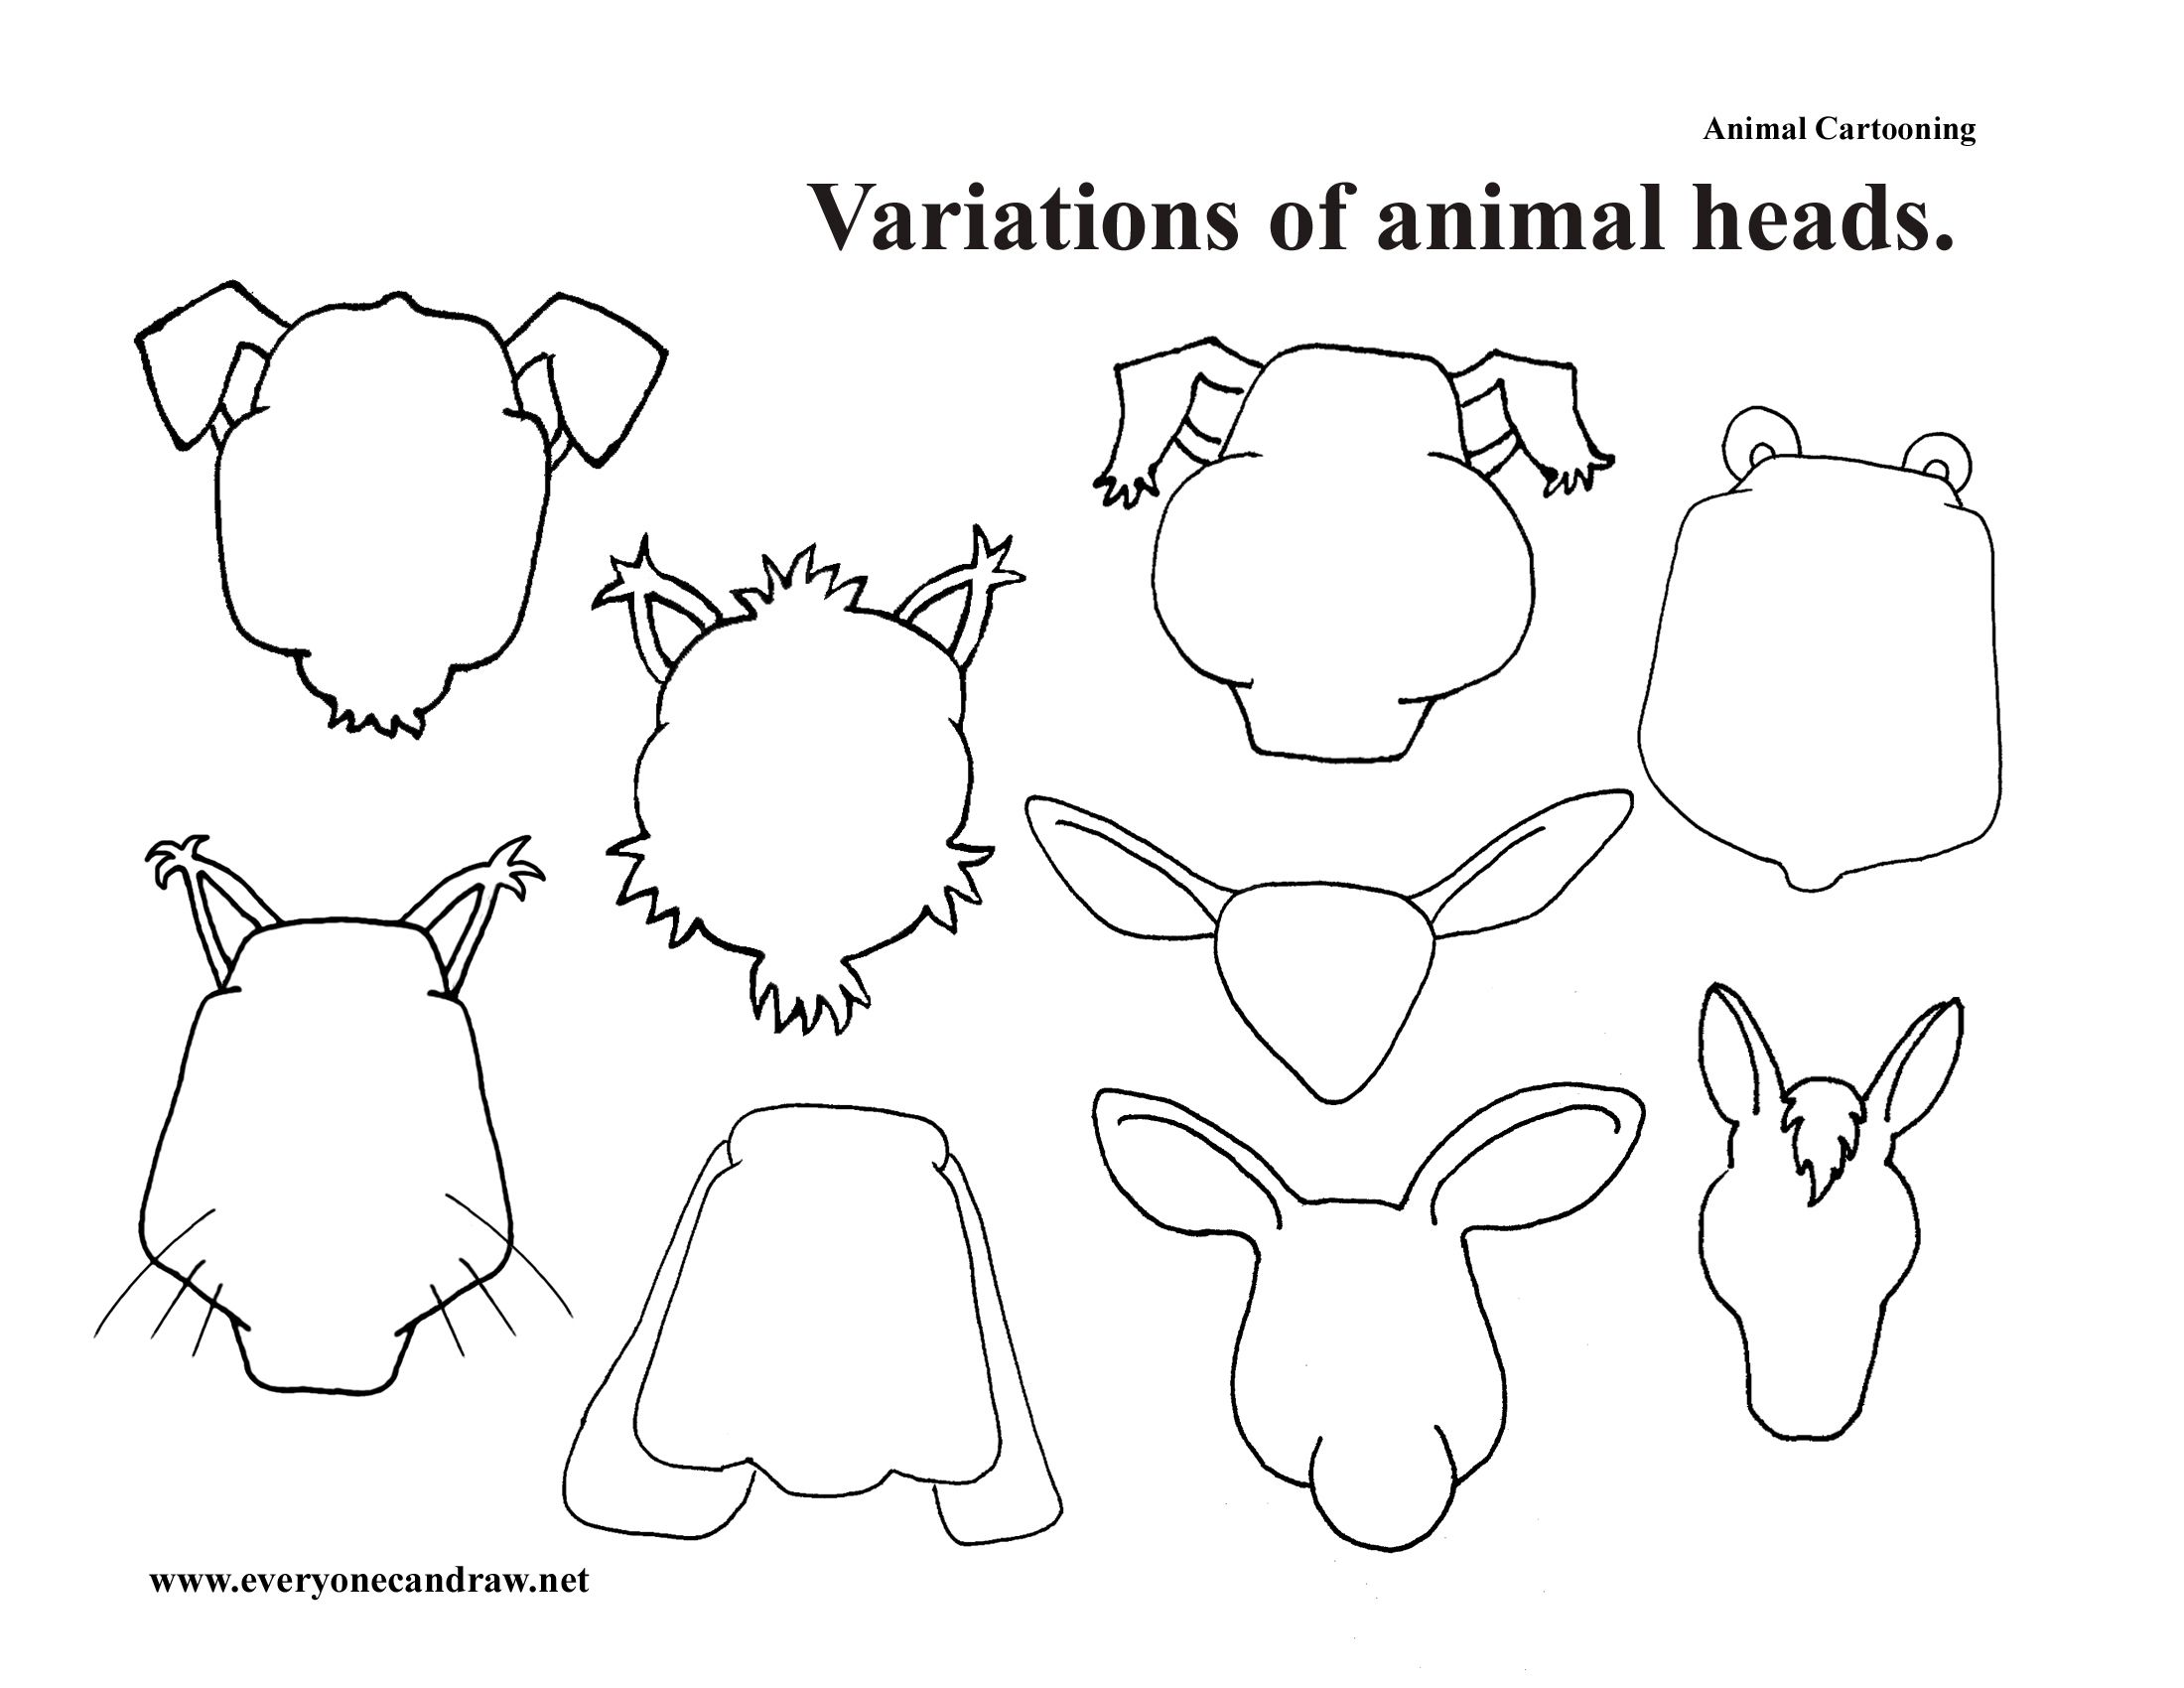 Variations On Animal Heads And Even More Animal Heads In